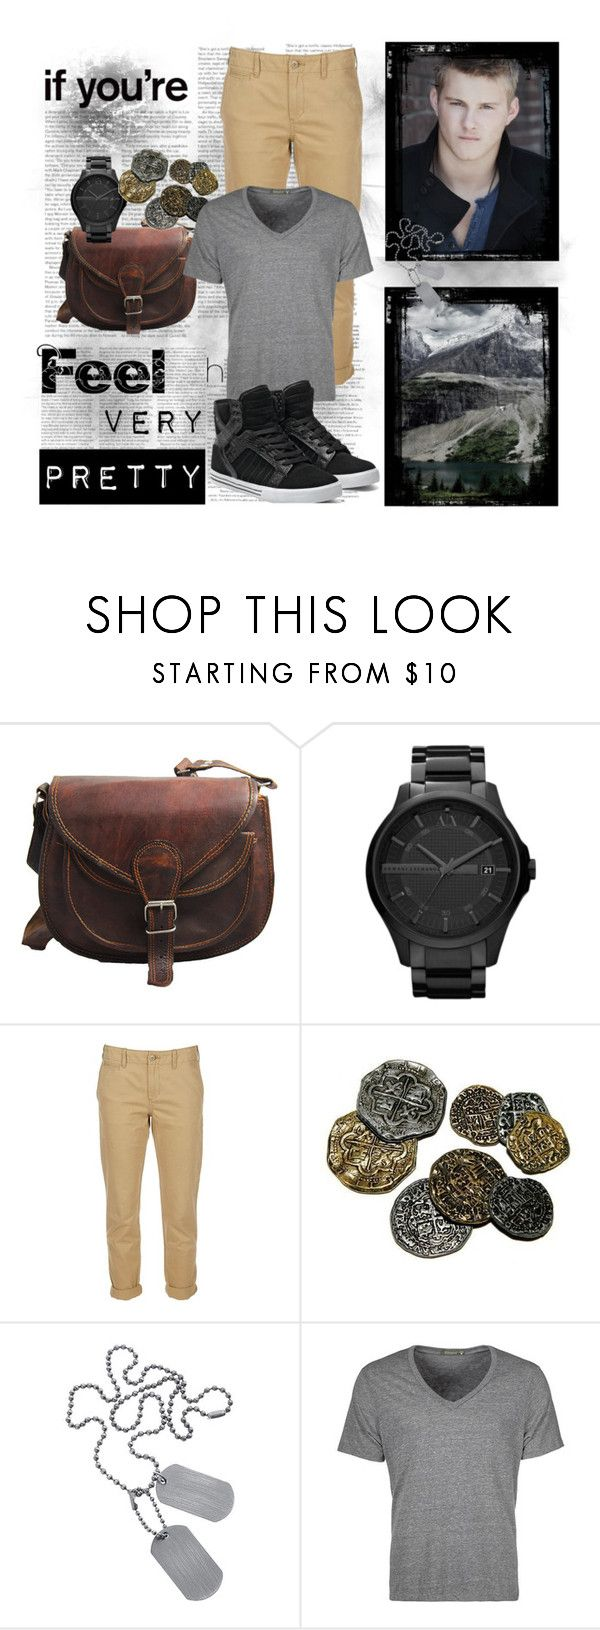 """""""Catos Beach Outfit."""" by thedarkflame ❤ liked on Polyvore featuring Armani Exchange, Polo Ralph Lauren, ELSE, Topman, Alternative and Supra"""